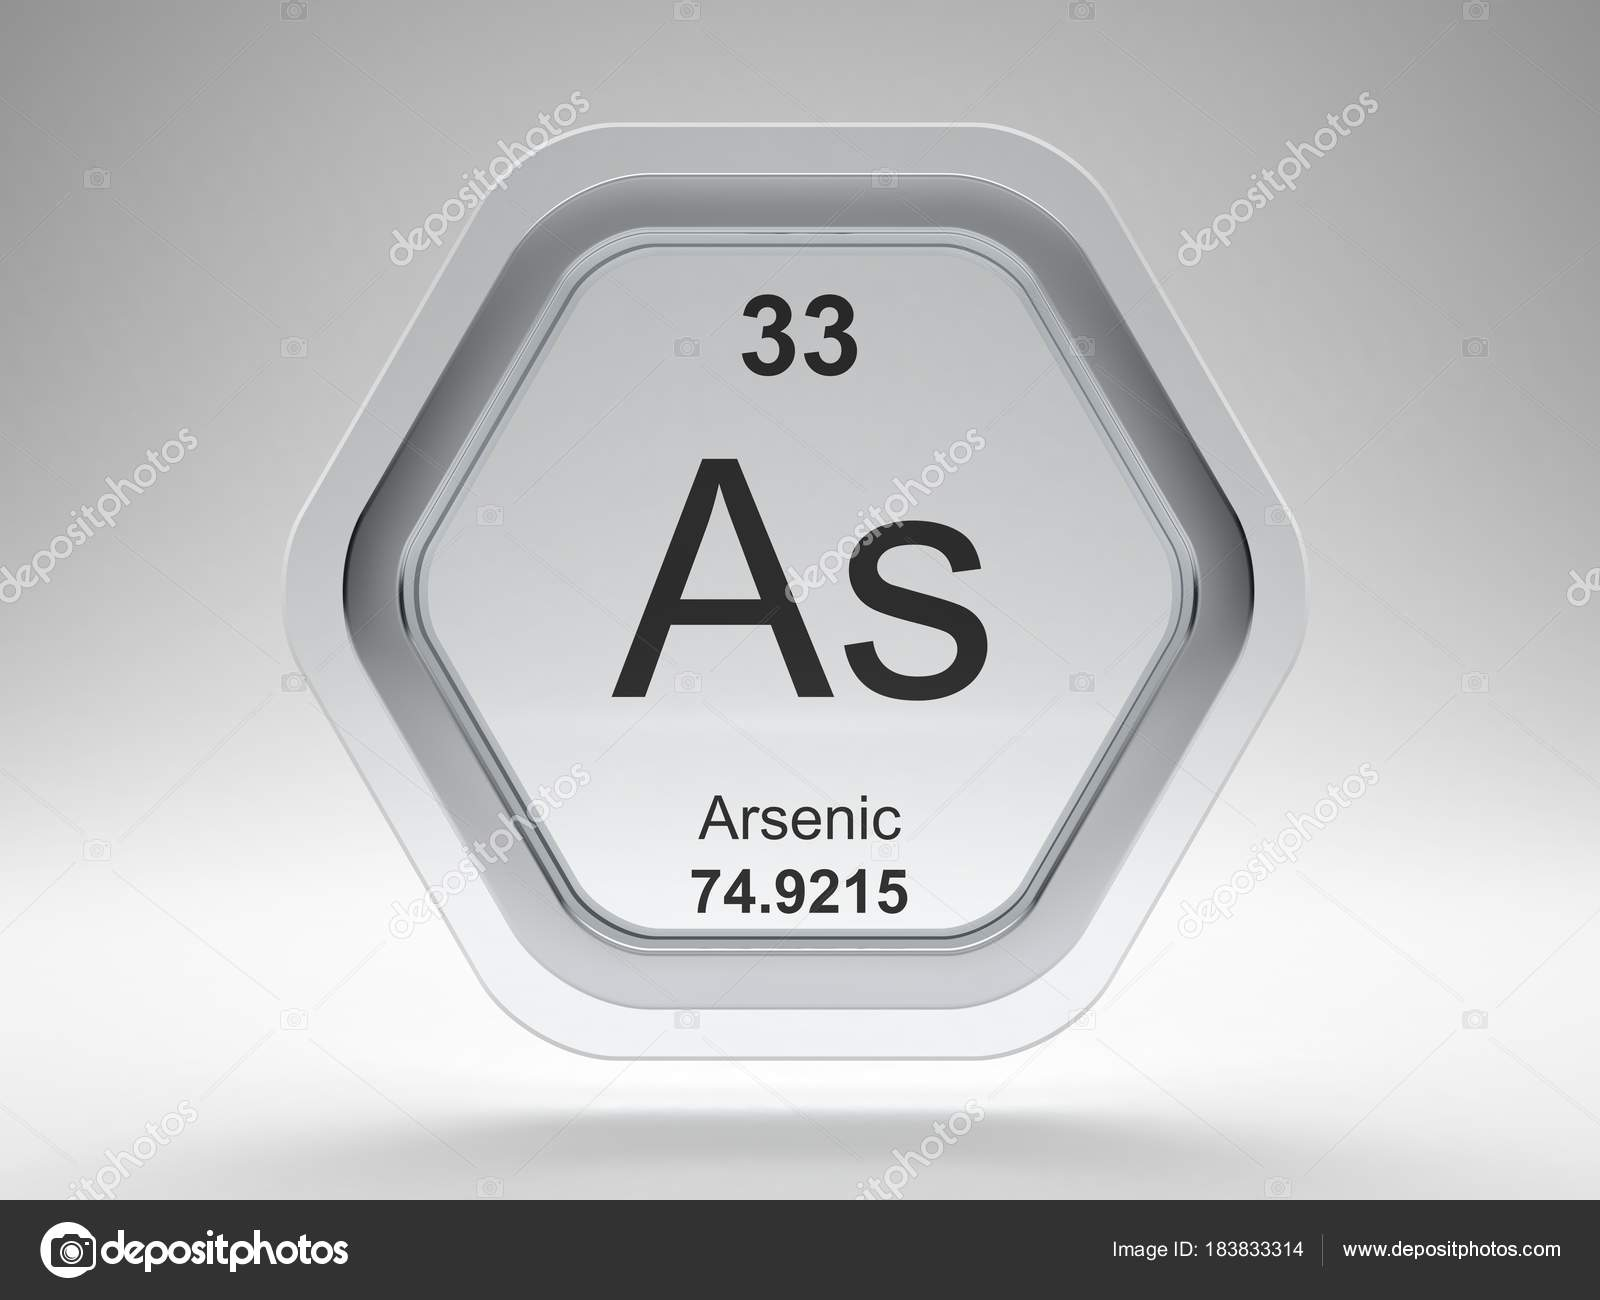 Arsenic symbol periodic table modern glass steel icon stock photo arsenic symbol from the periodic table on modern glass and steel icon photo by conceptw urtaz Gallery